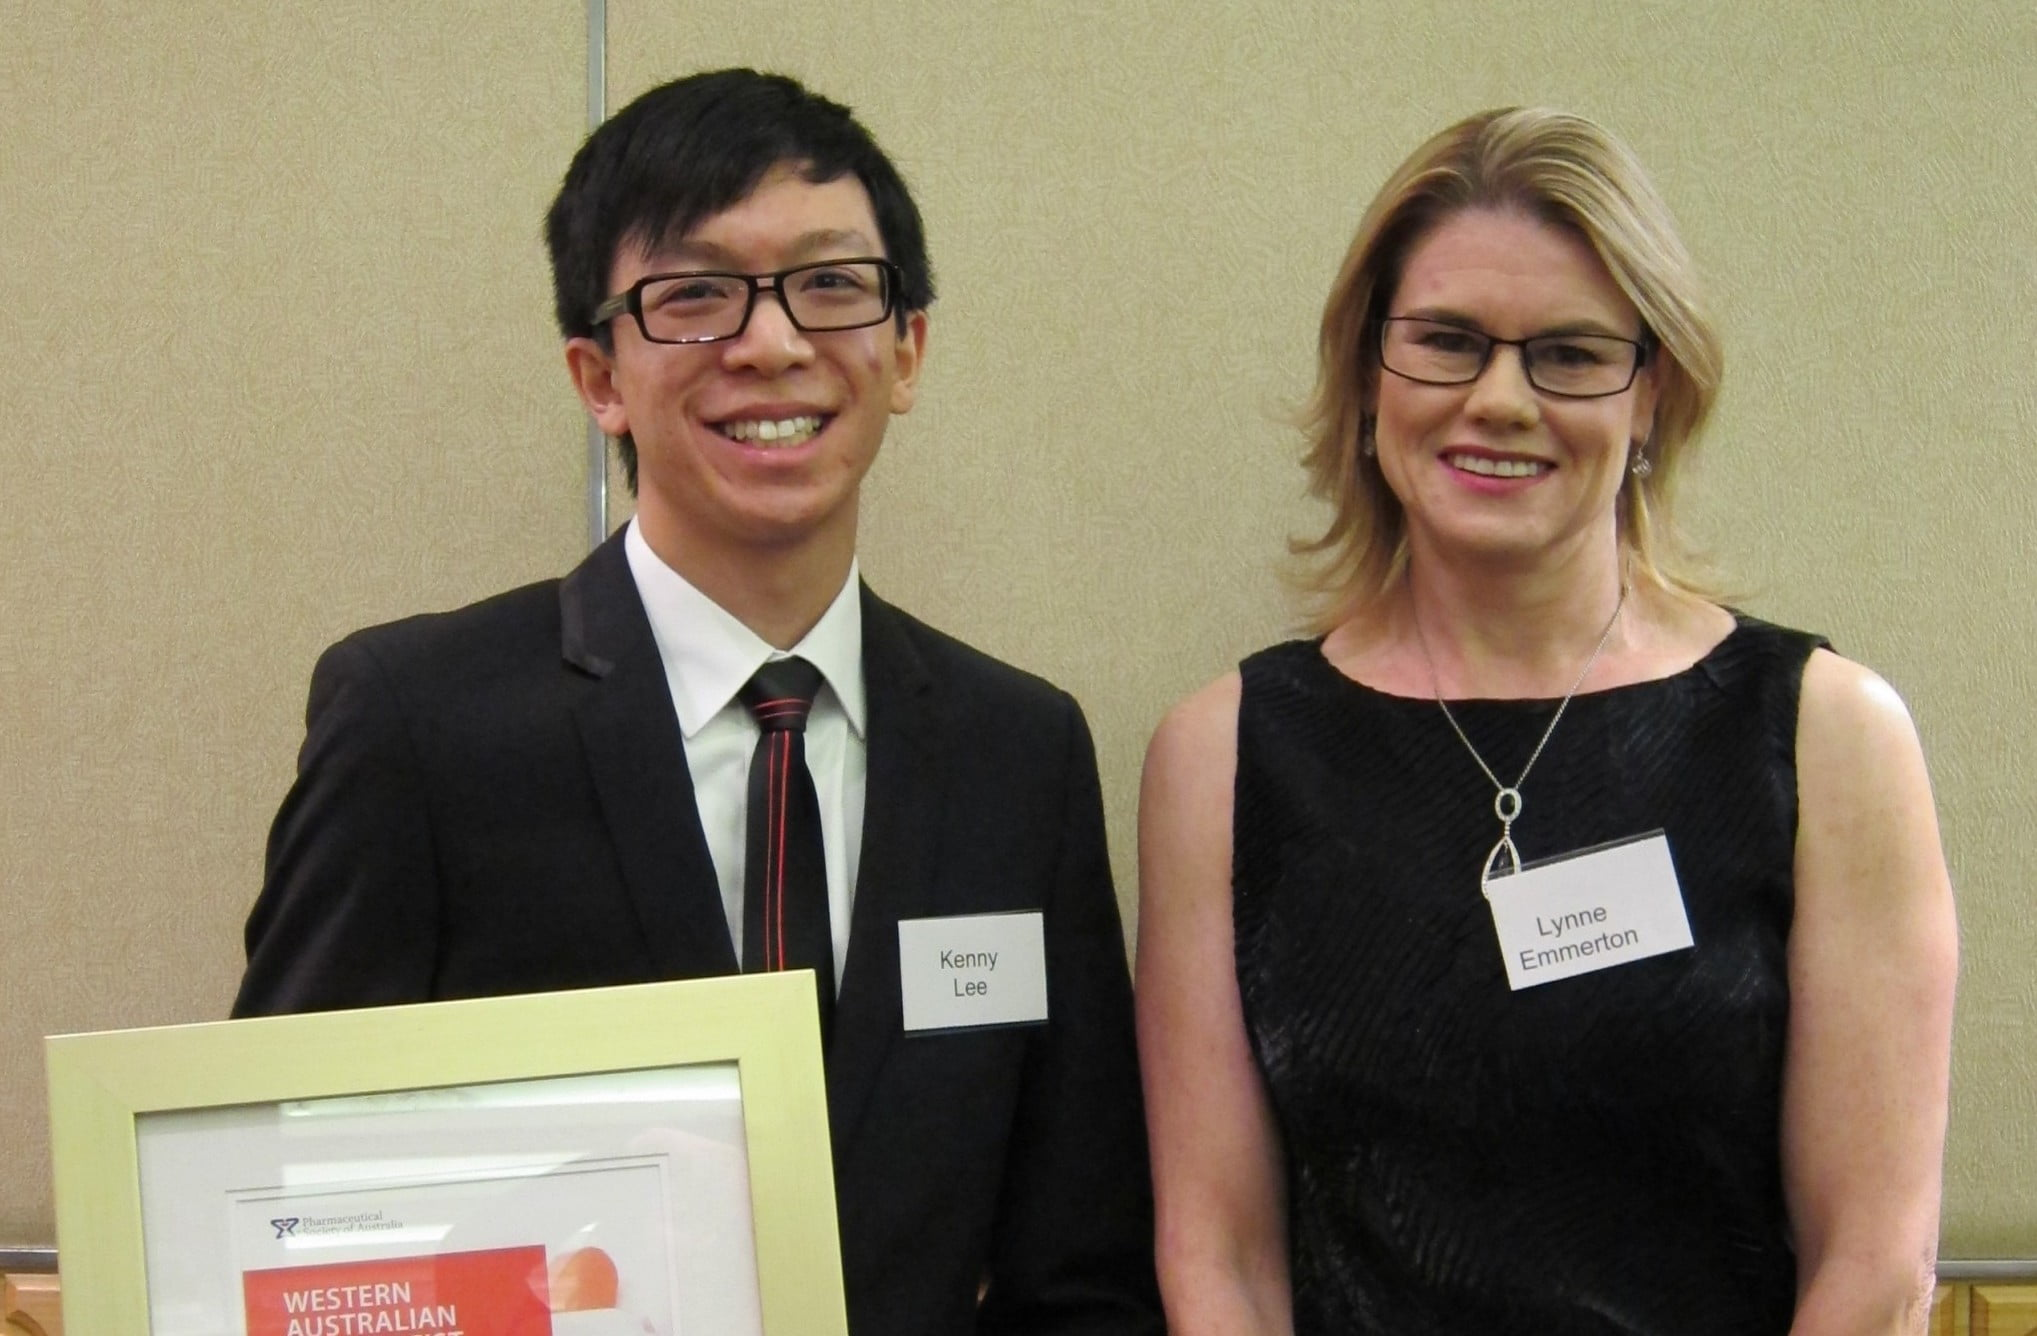 WA's pharmacists: young pharmacist of the year Kenny Lee with supervisor A/Prof Lynne Emmerson